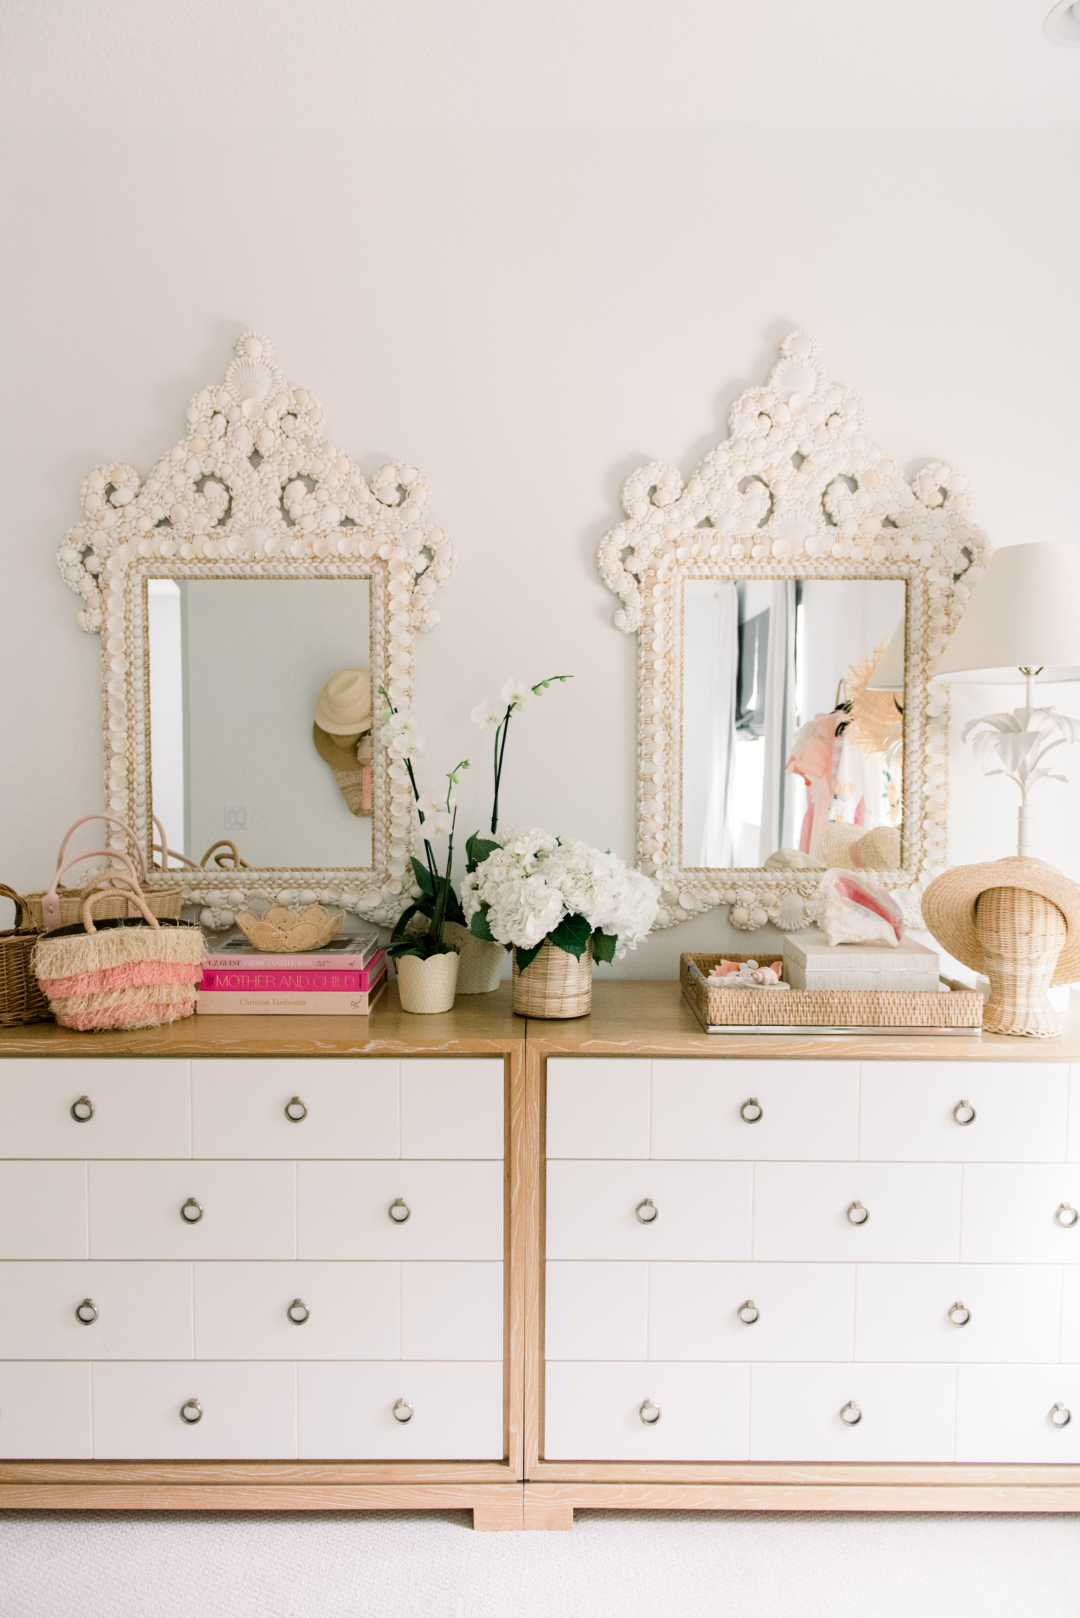 blush and shell dresser decor